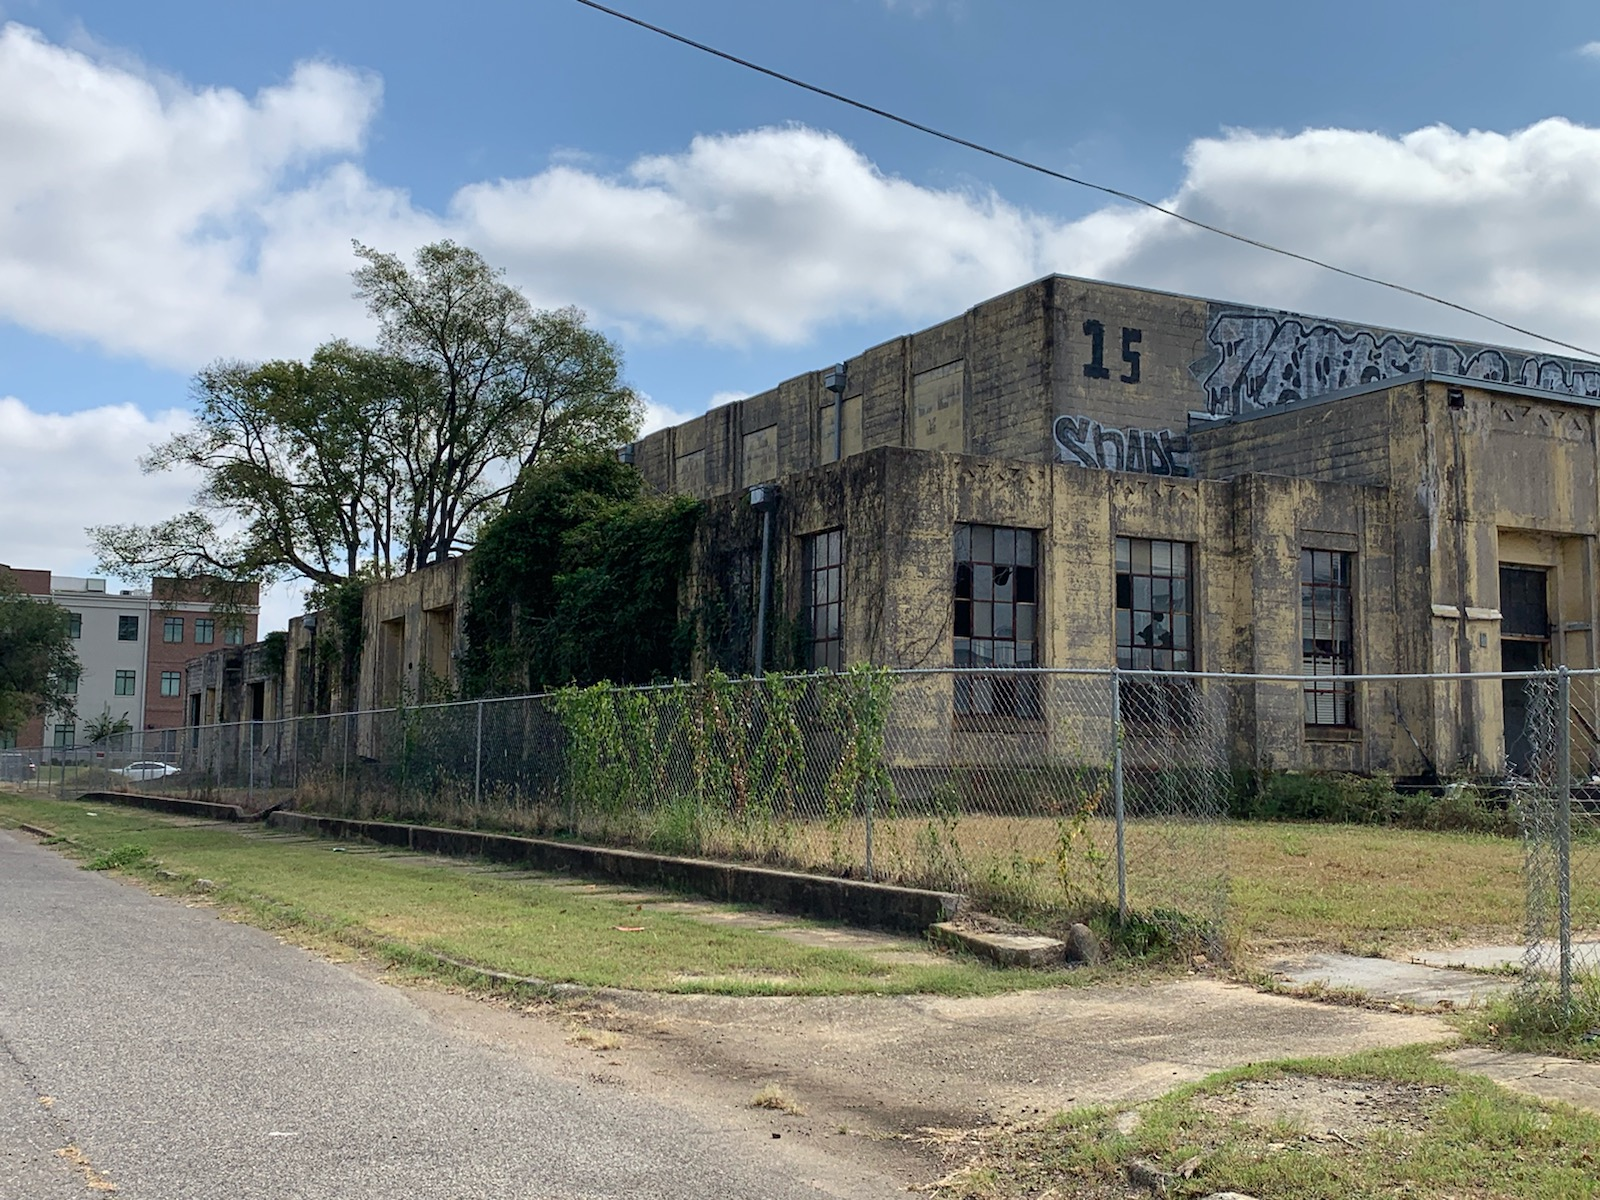 Decomposed body found in abandoned Birmingham building 2 months ago still unidentified